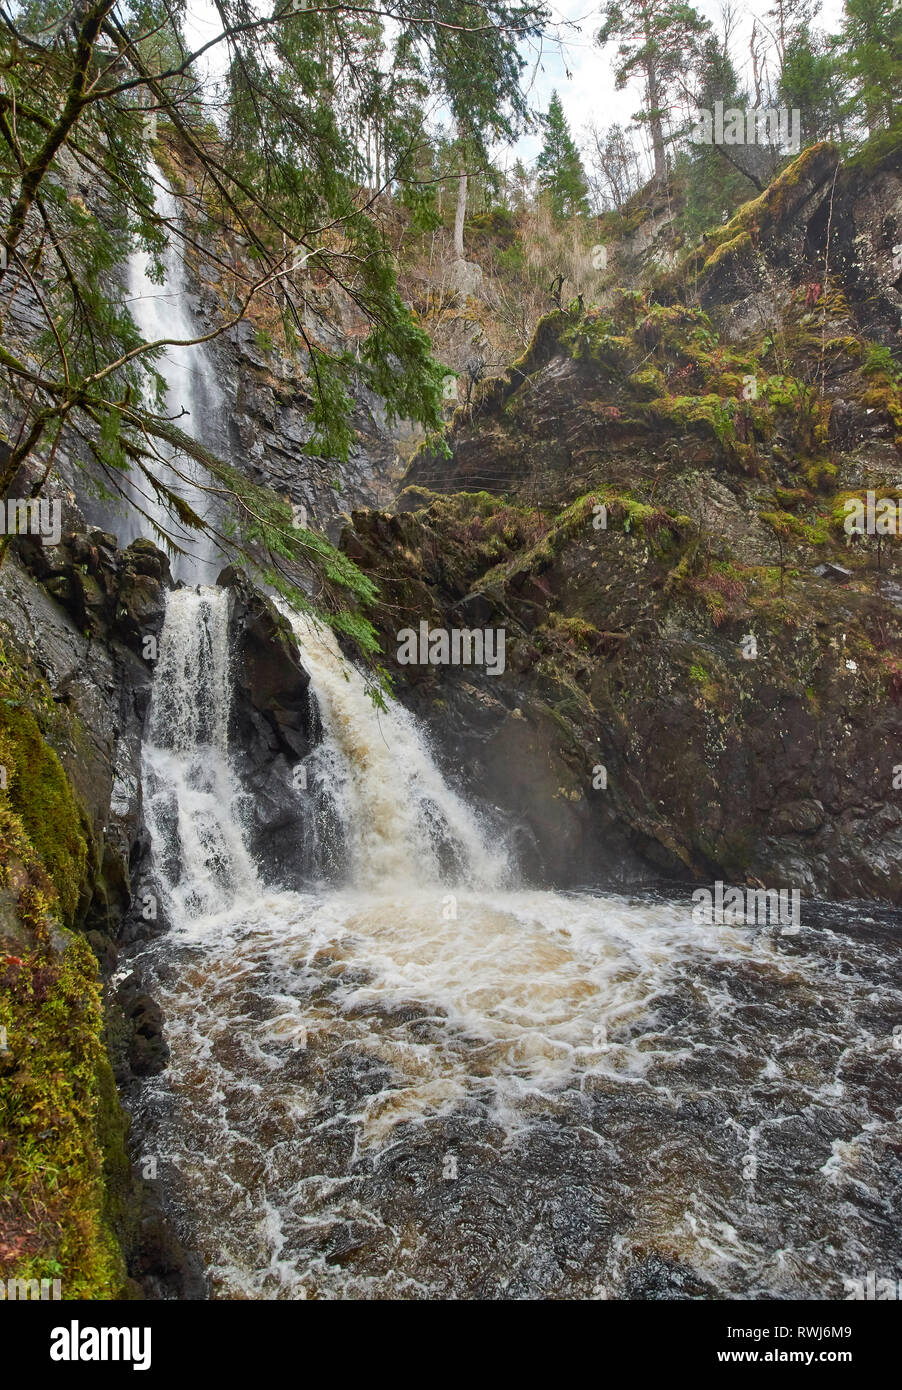 PLODDA FALLS TOMICH HIGHLAND SCOTLAND FROM THE PLATFORM TO THE LOWER FALLS BELOW Stock Photo